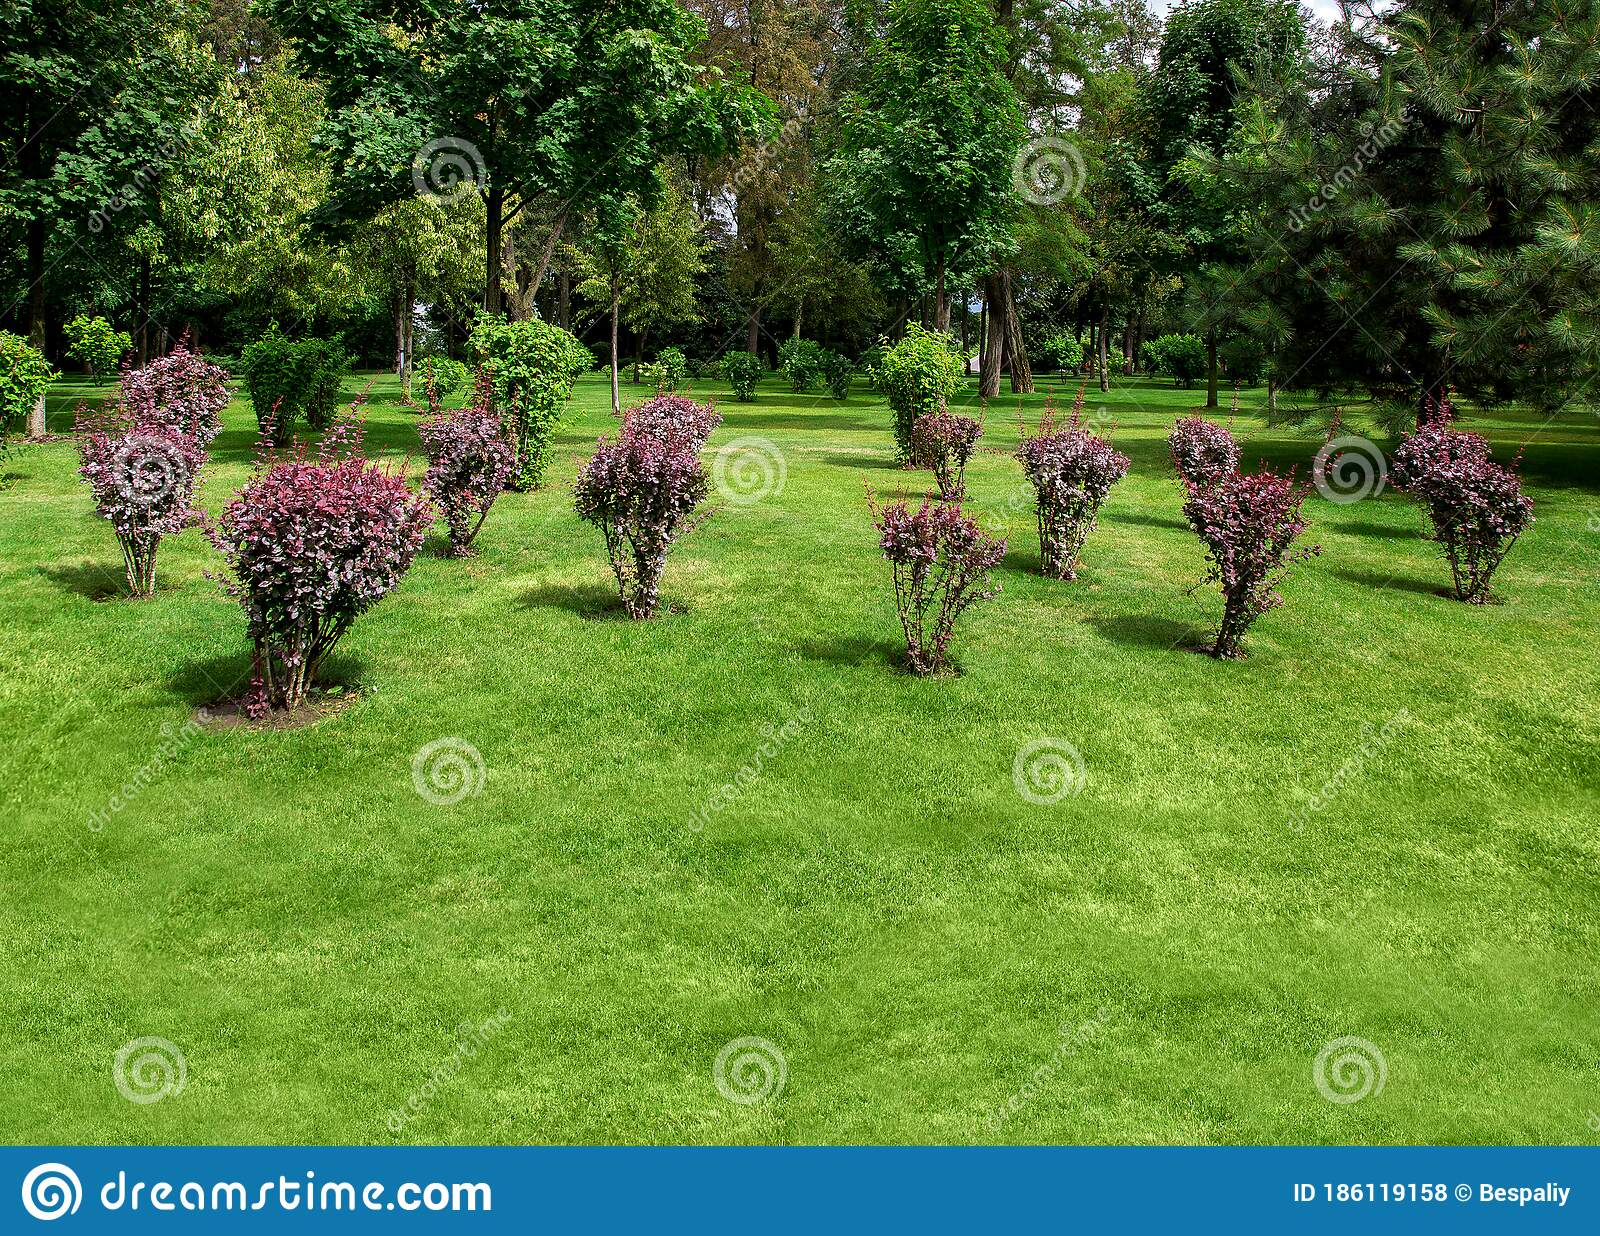 Landscape Garden Backyard With Shrub Bushes And Trees Stock Photo Image Of Lawn Green 186119158